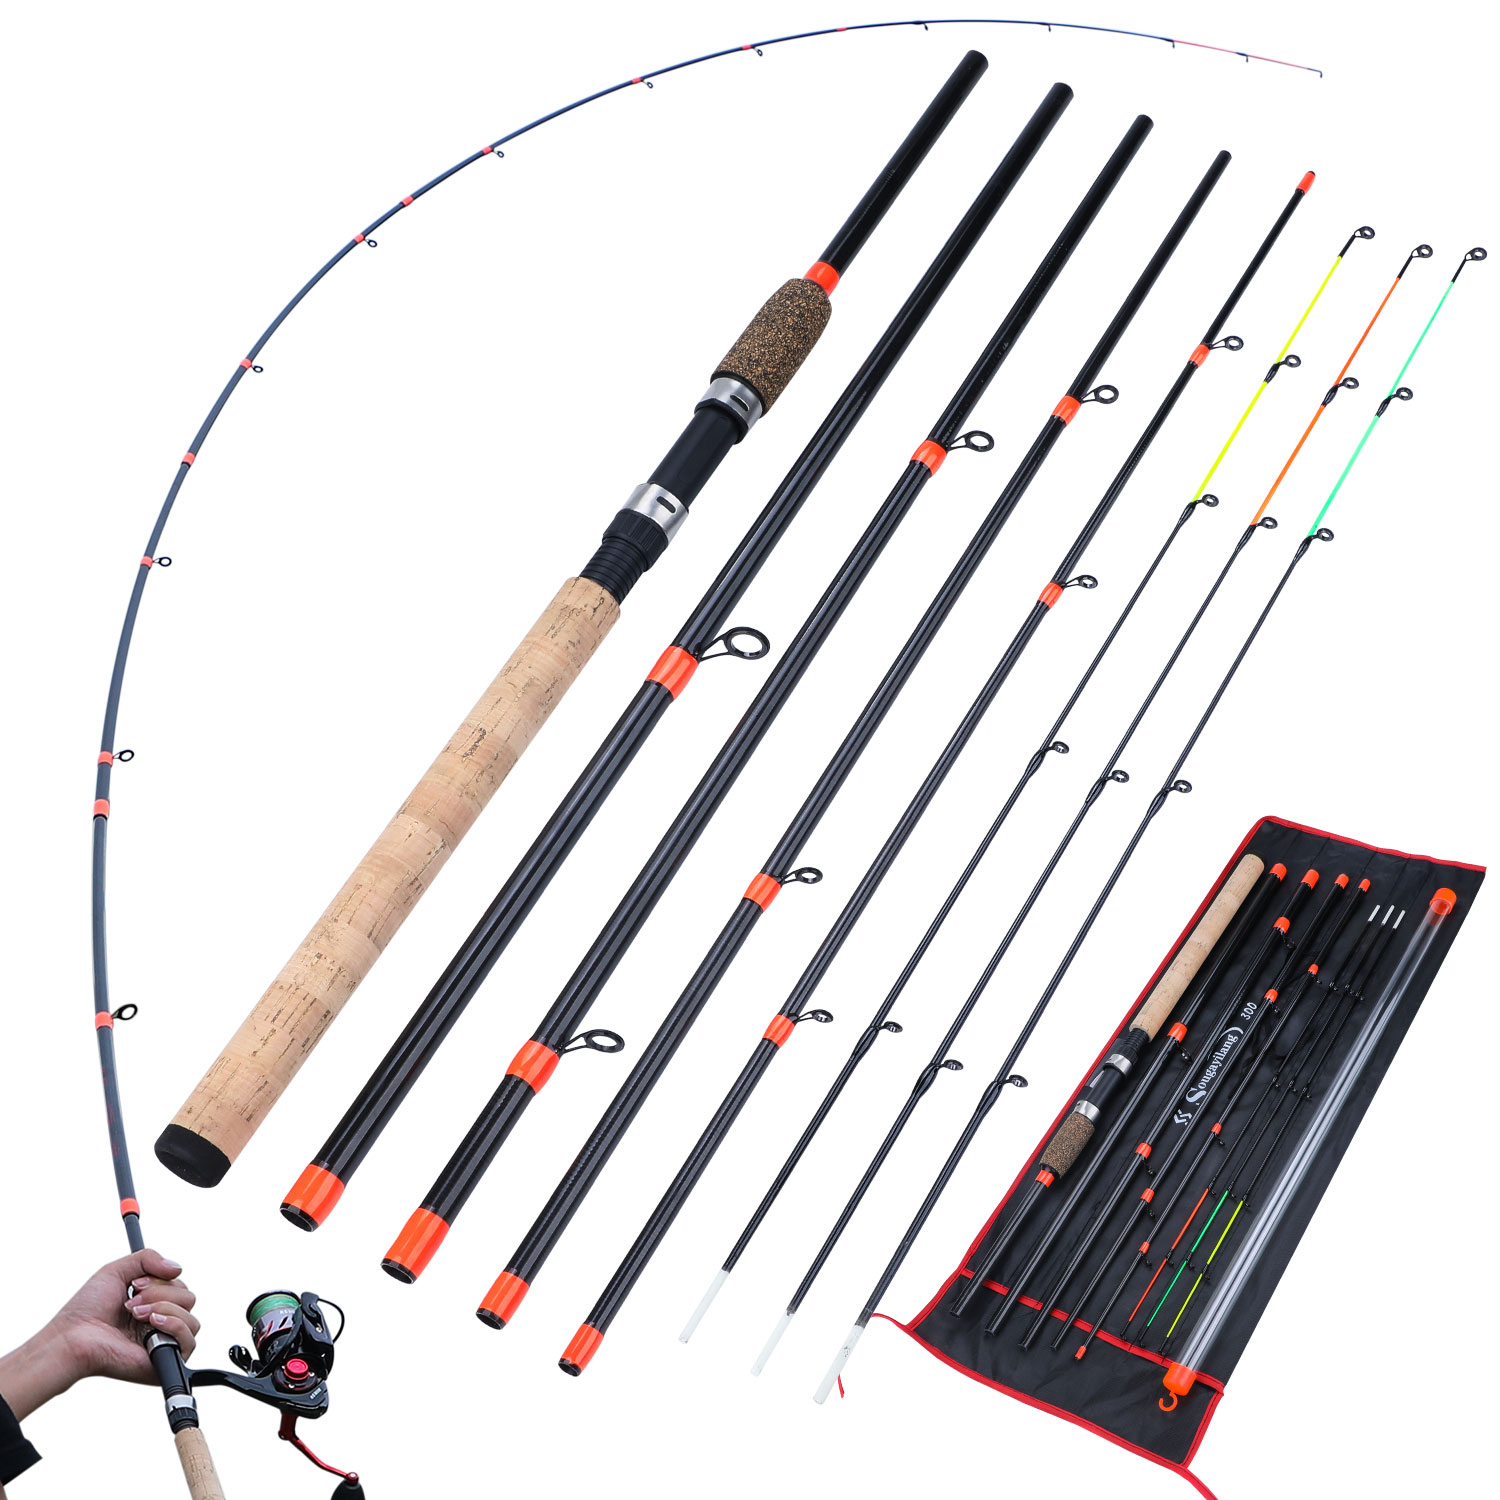 Sougayilang New Feeder Fishing Rod Lengthened Handle 6 Sections Fishing Rod L M H Power Carbon Fiber Travel Rod Fishing Tackle 2